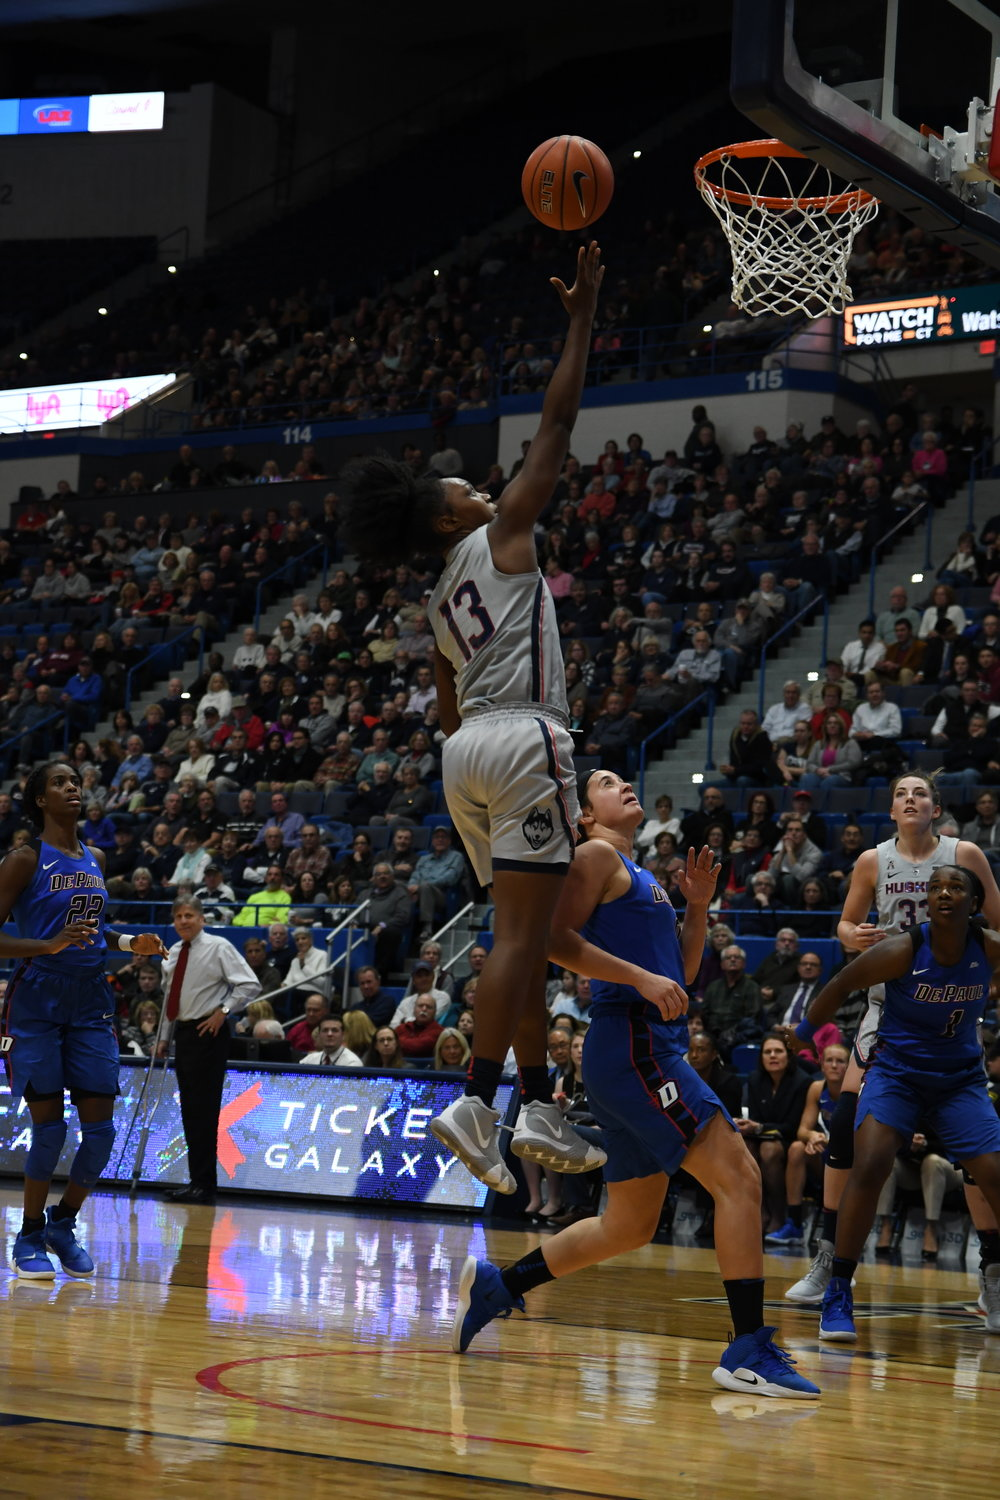 Christyn Williams has provided the Huskies with explosive athleticism from the guard position during her freshman season. Photo by Judah Shingleton/The Daily Campus